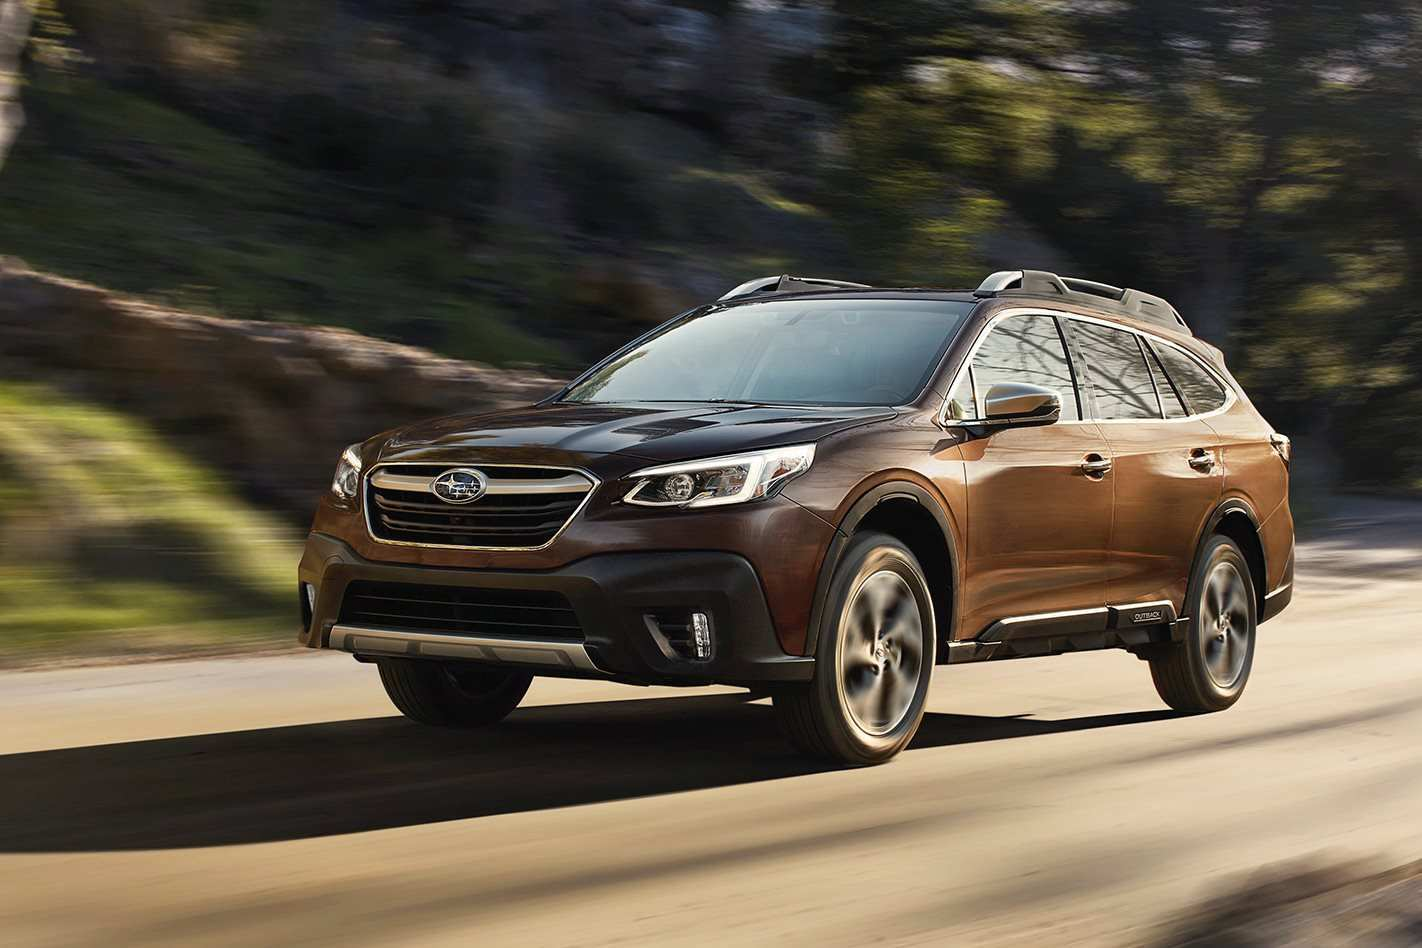 52 The Subaru Outback 2020 Japan Redesign and Concept with Subaru Outback 2020 Japan